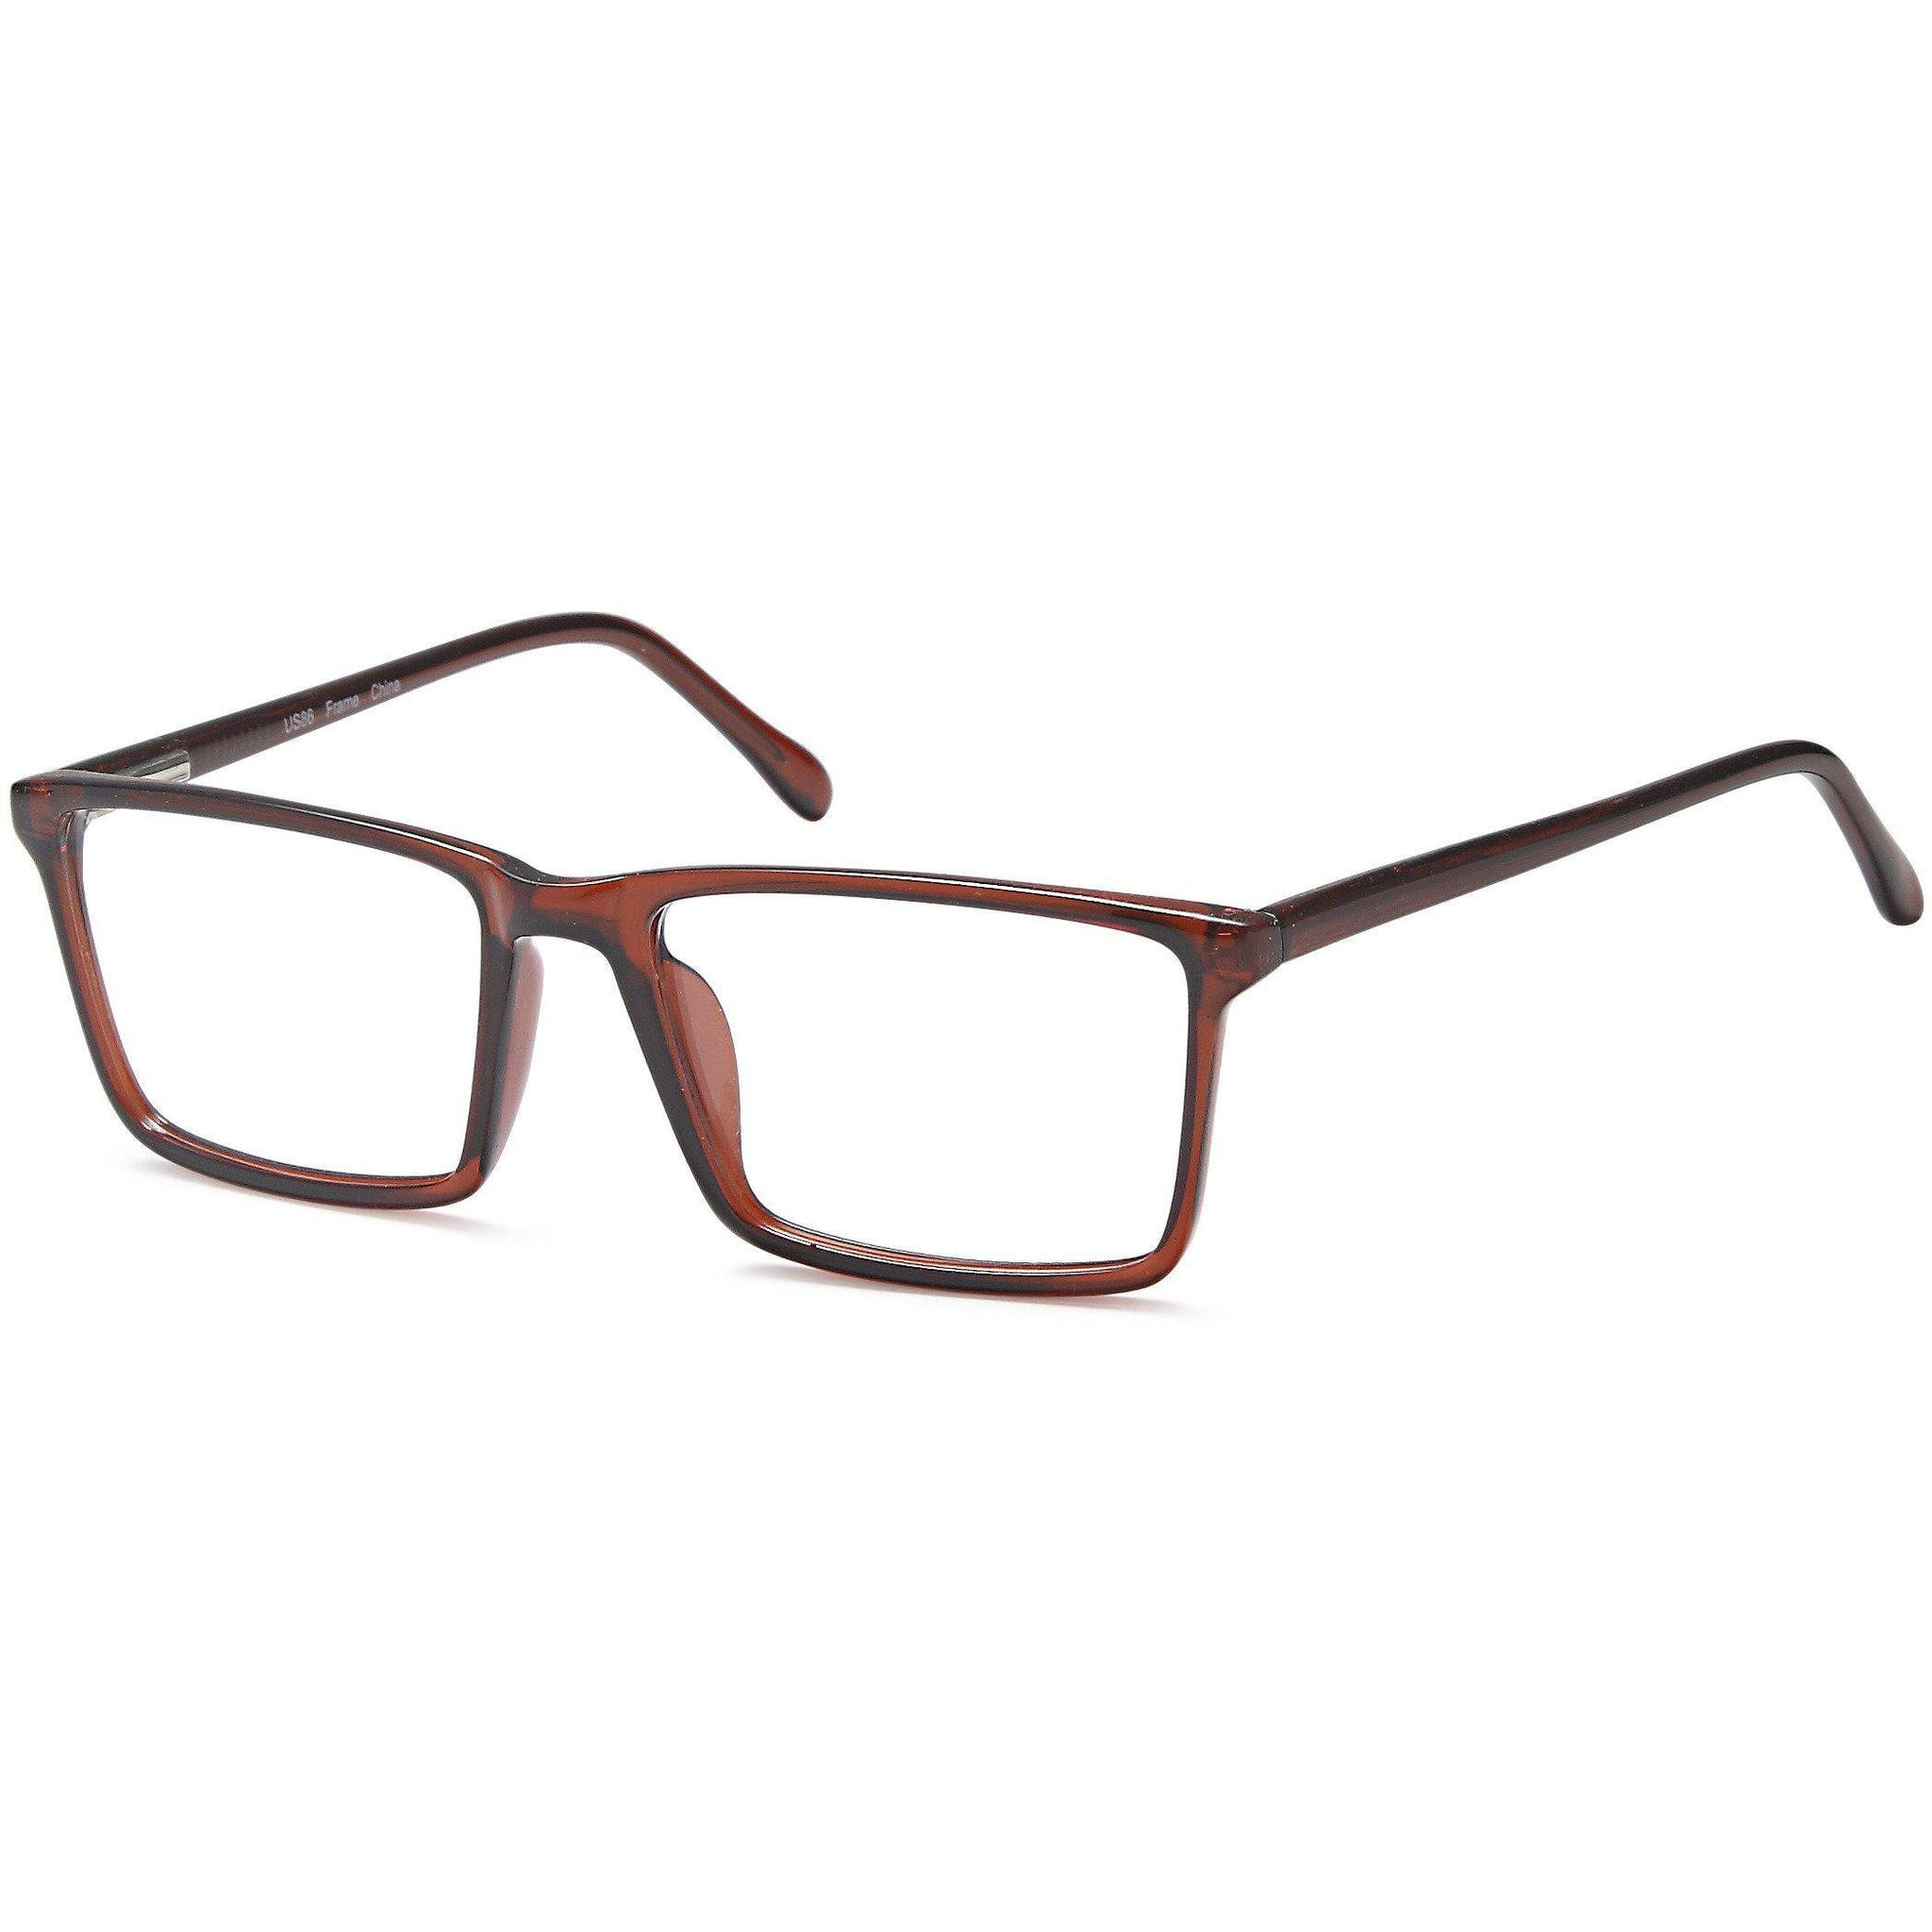 4U Prescription Glasses US 86 Optical Eyeglasses Frame - timetoshade